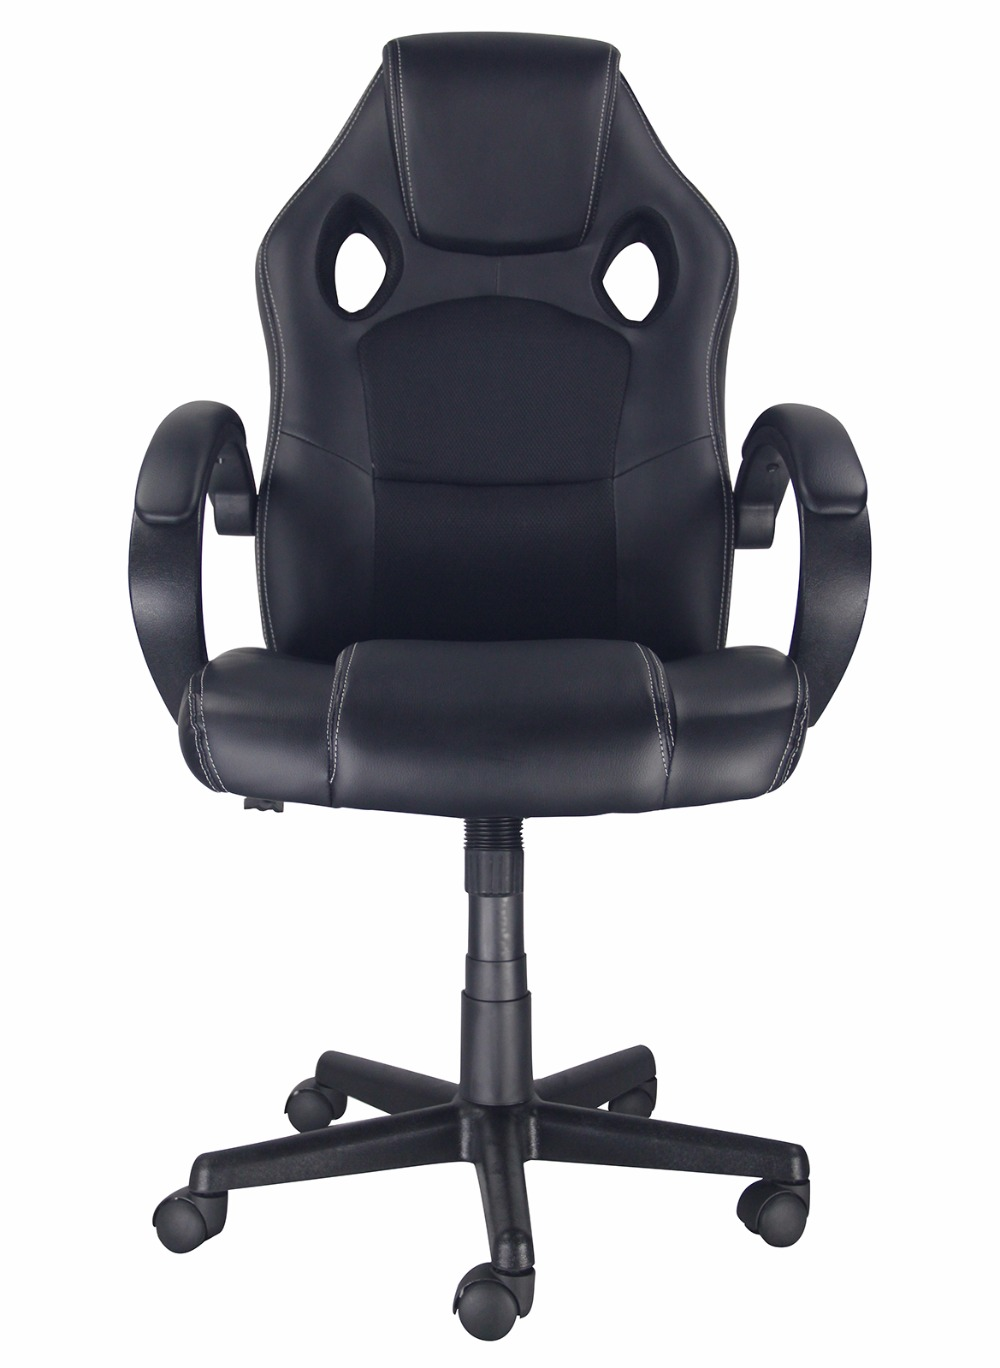 Swivel Office Chair Gas Lift Racing Gaming Tilt Control Adjule Computer Dropshipping In Chairs From Furniture On Aliexpress